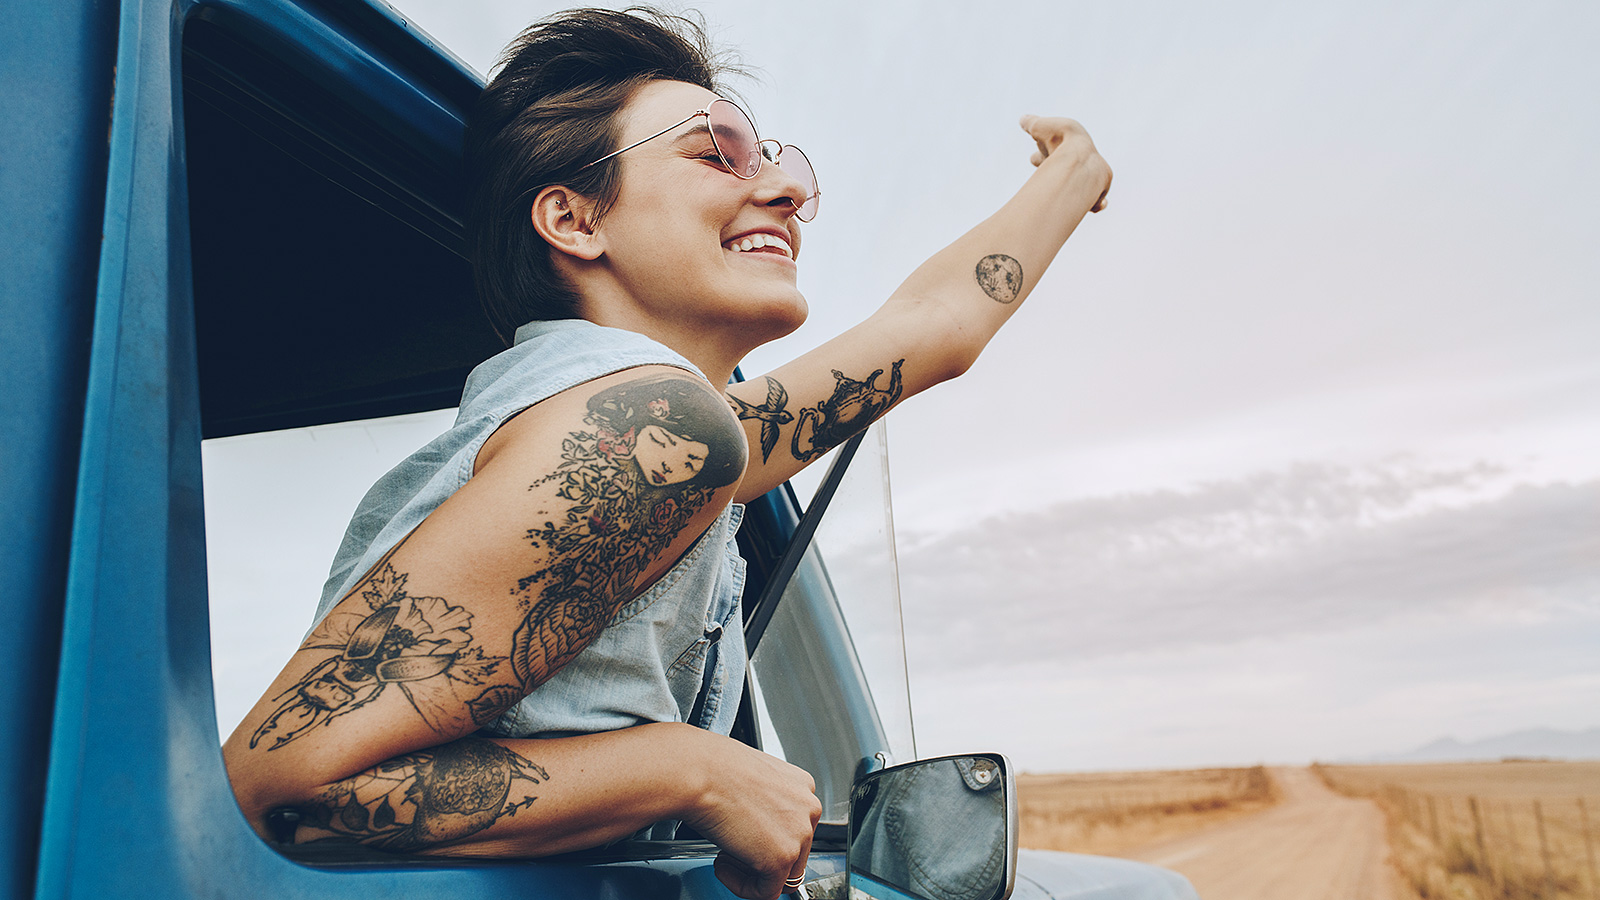 People with visible tattoos tend to have these personality traits, according to economists